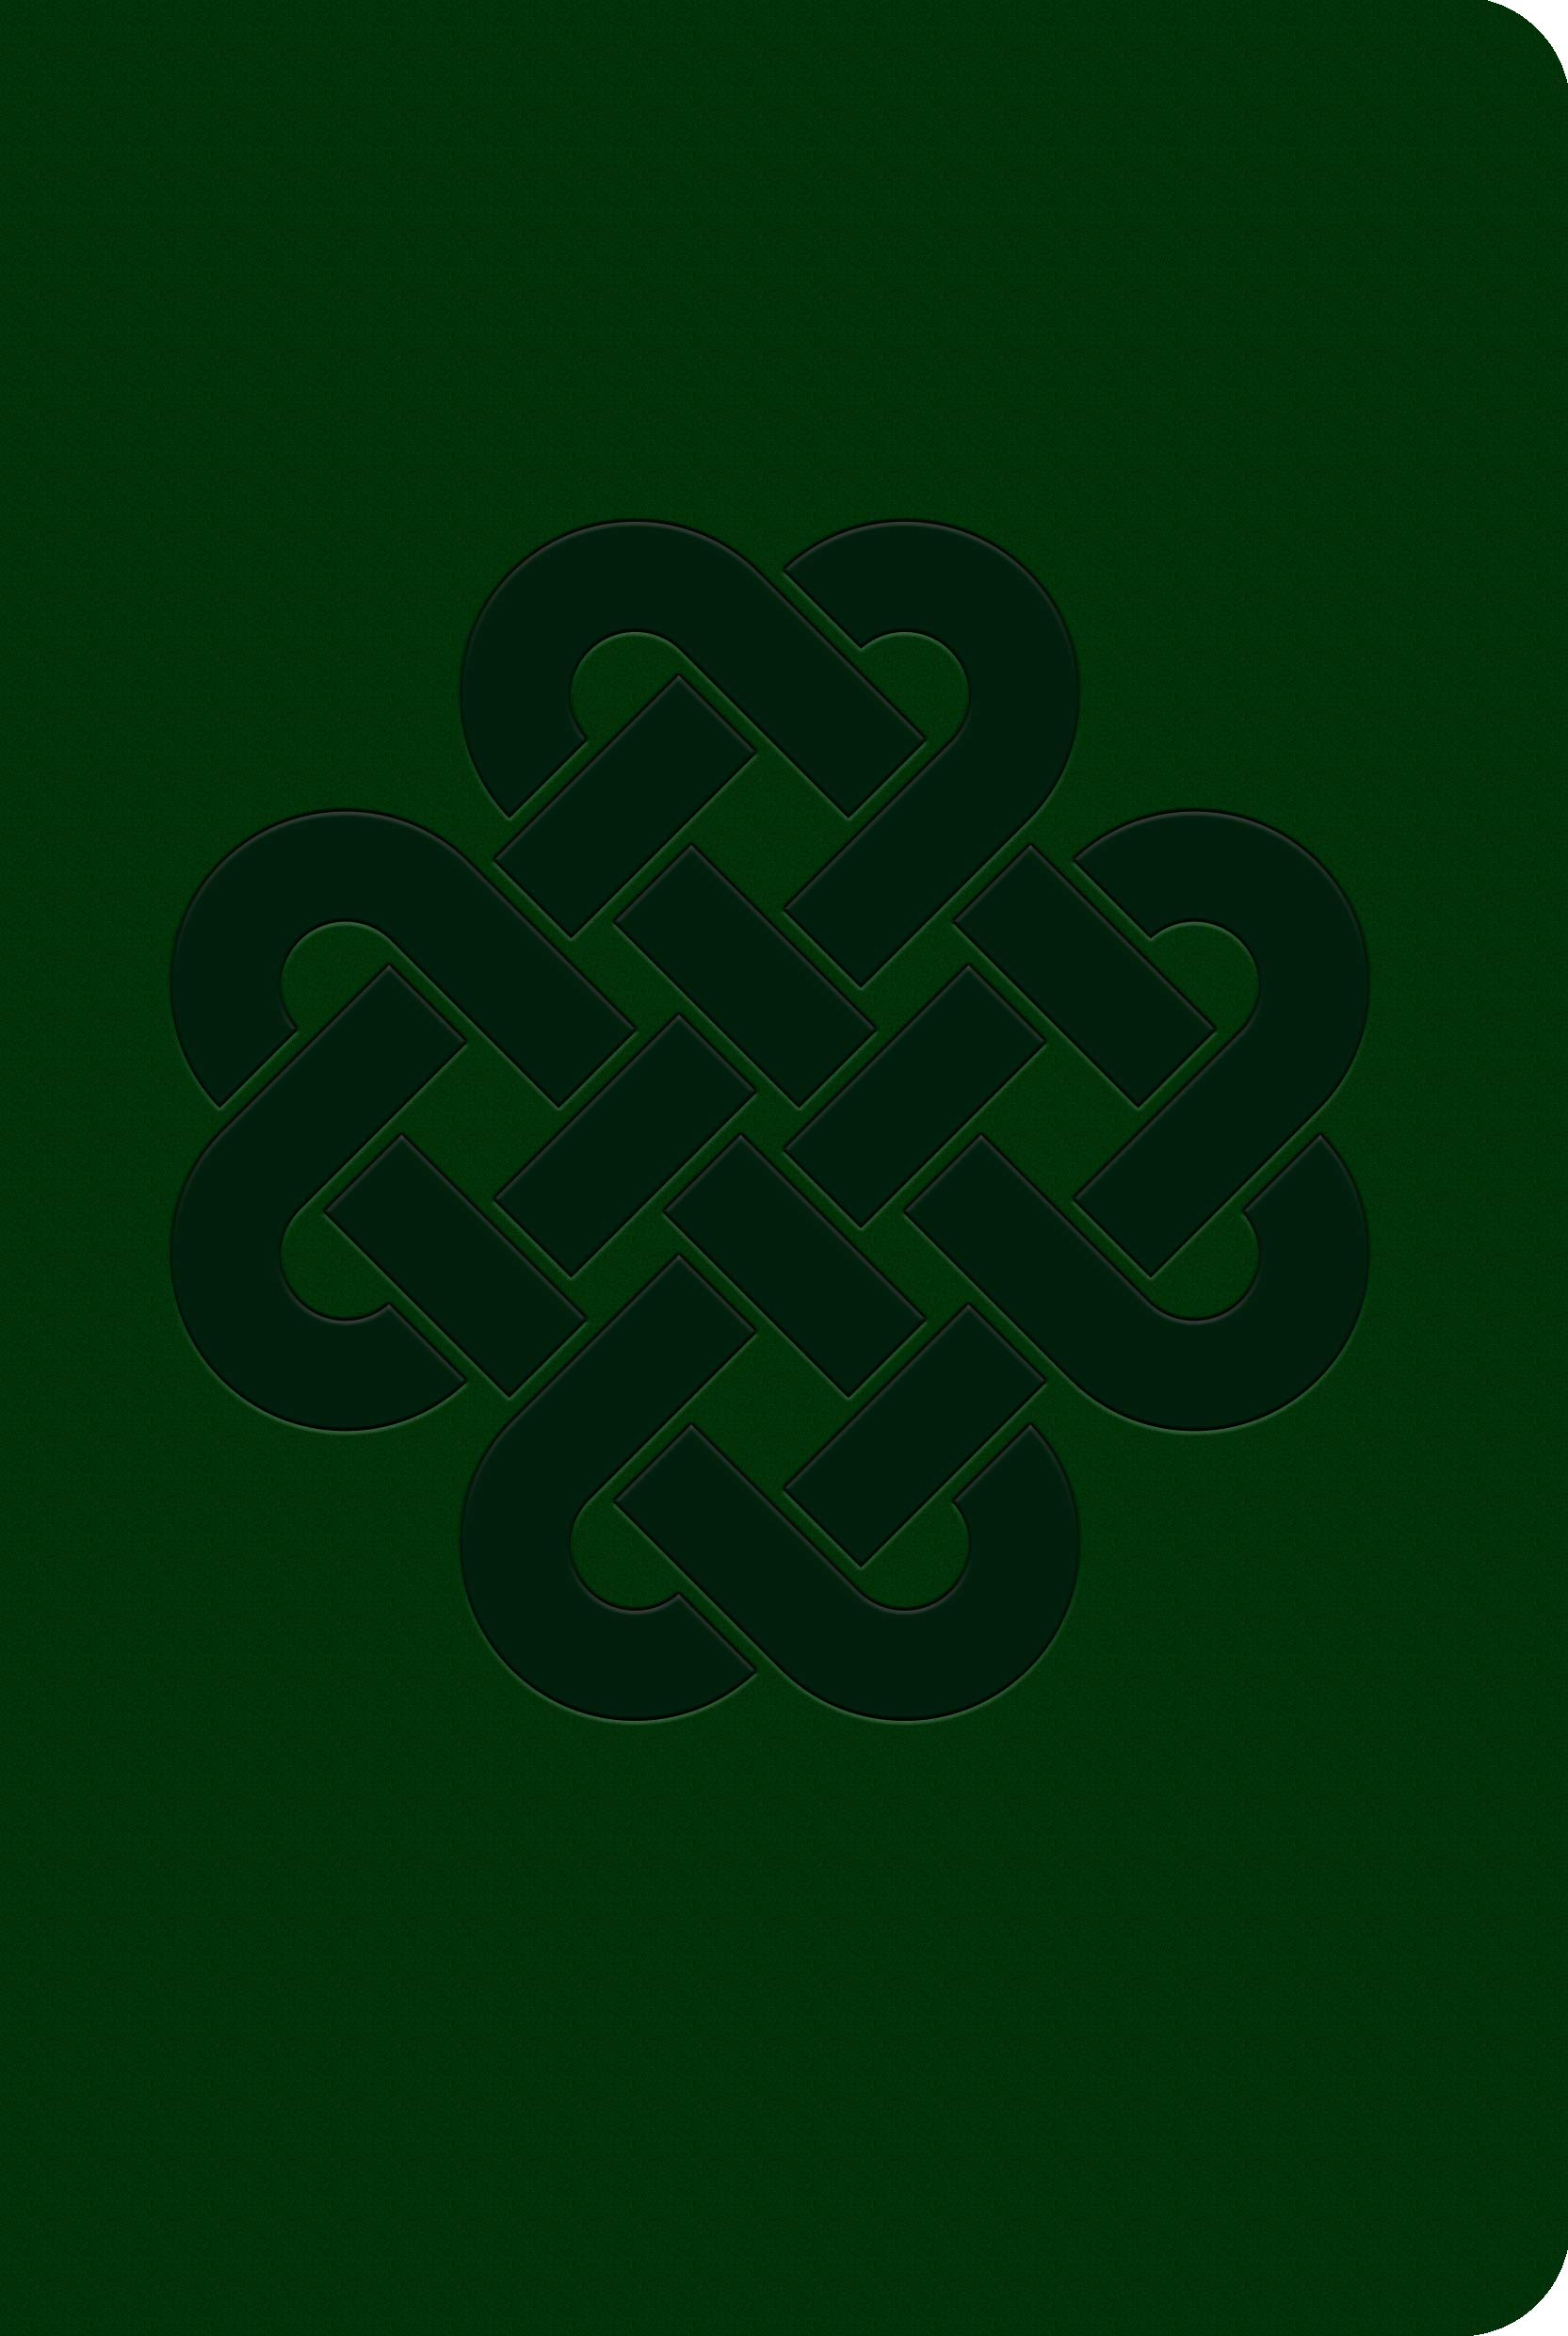 Piccadilly Soft Leatherlook Green Celtic Knot Journal   Vegan Friendly Soft Cover Lined Diary   Acid-Free Writing Paper   192 Pages